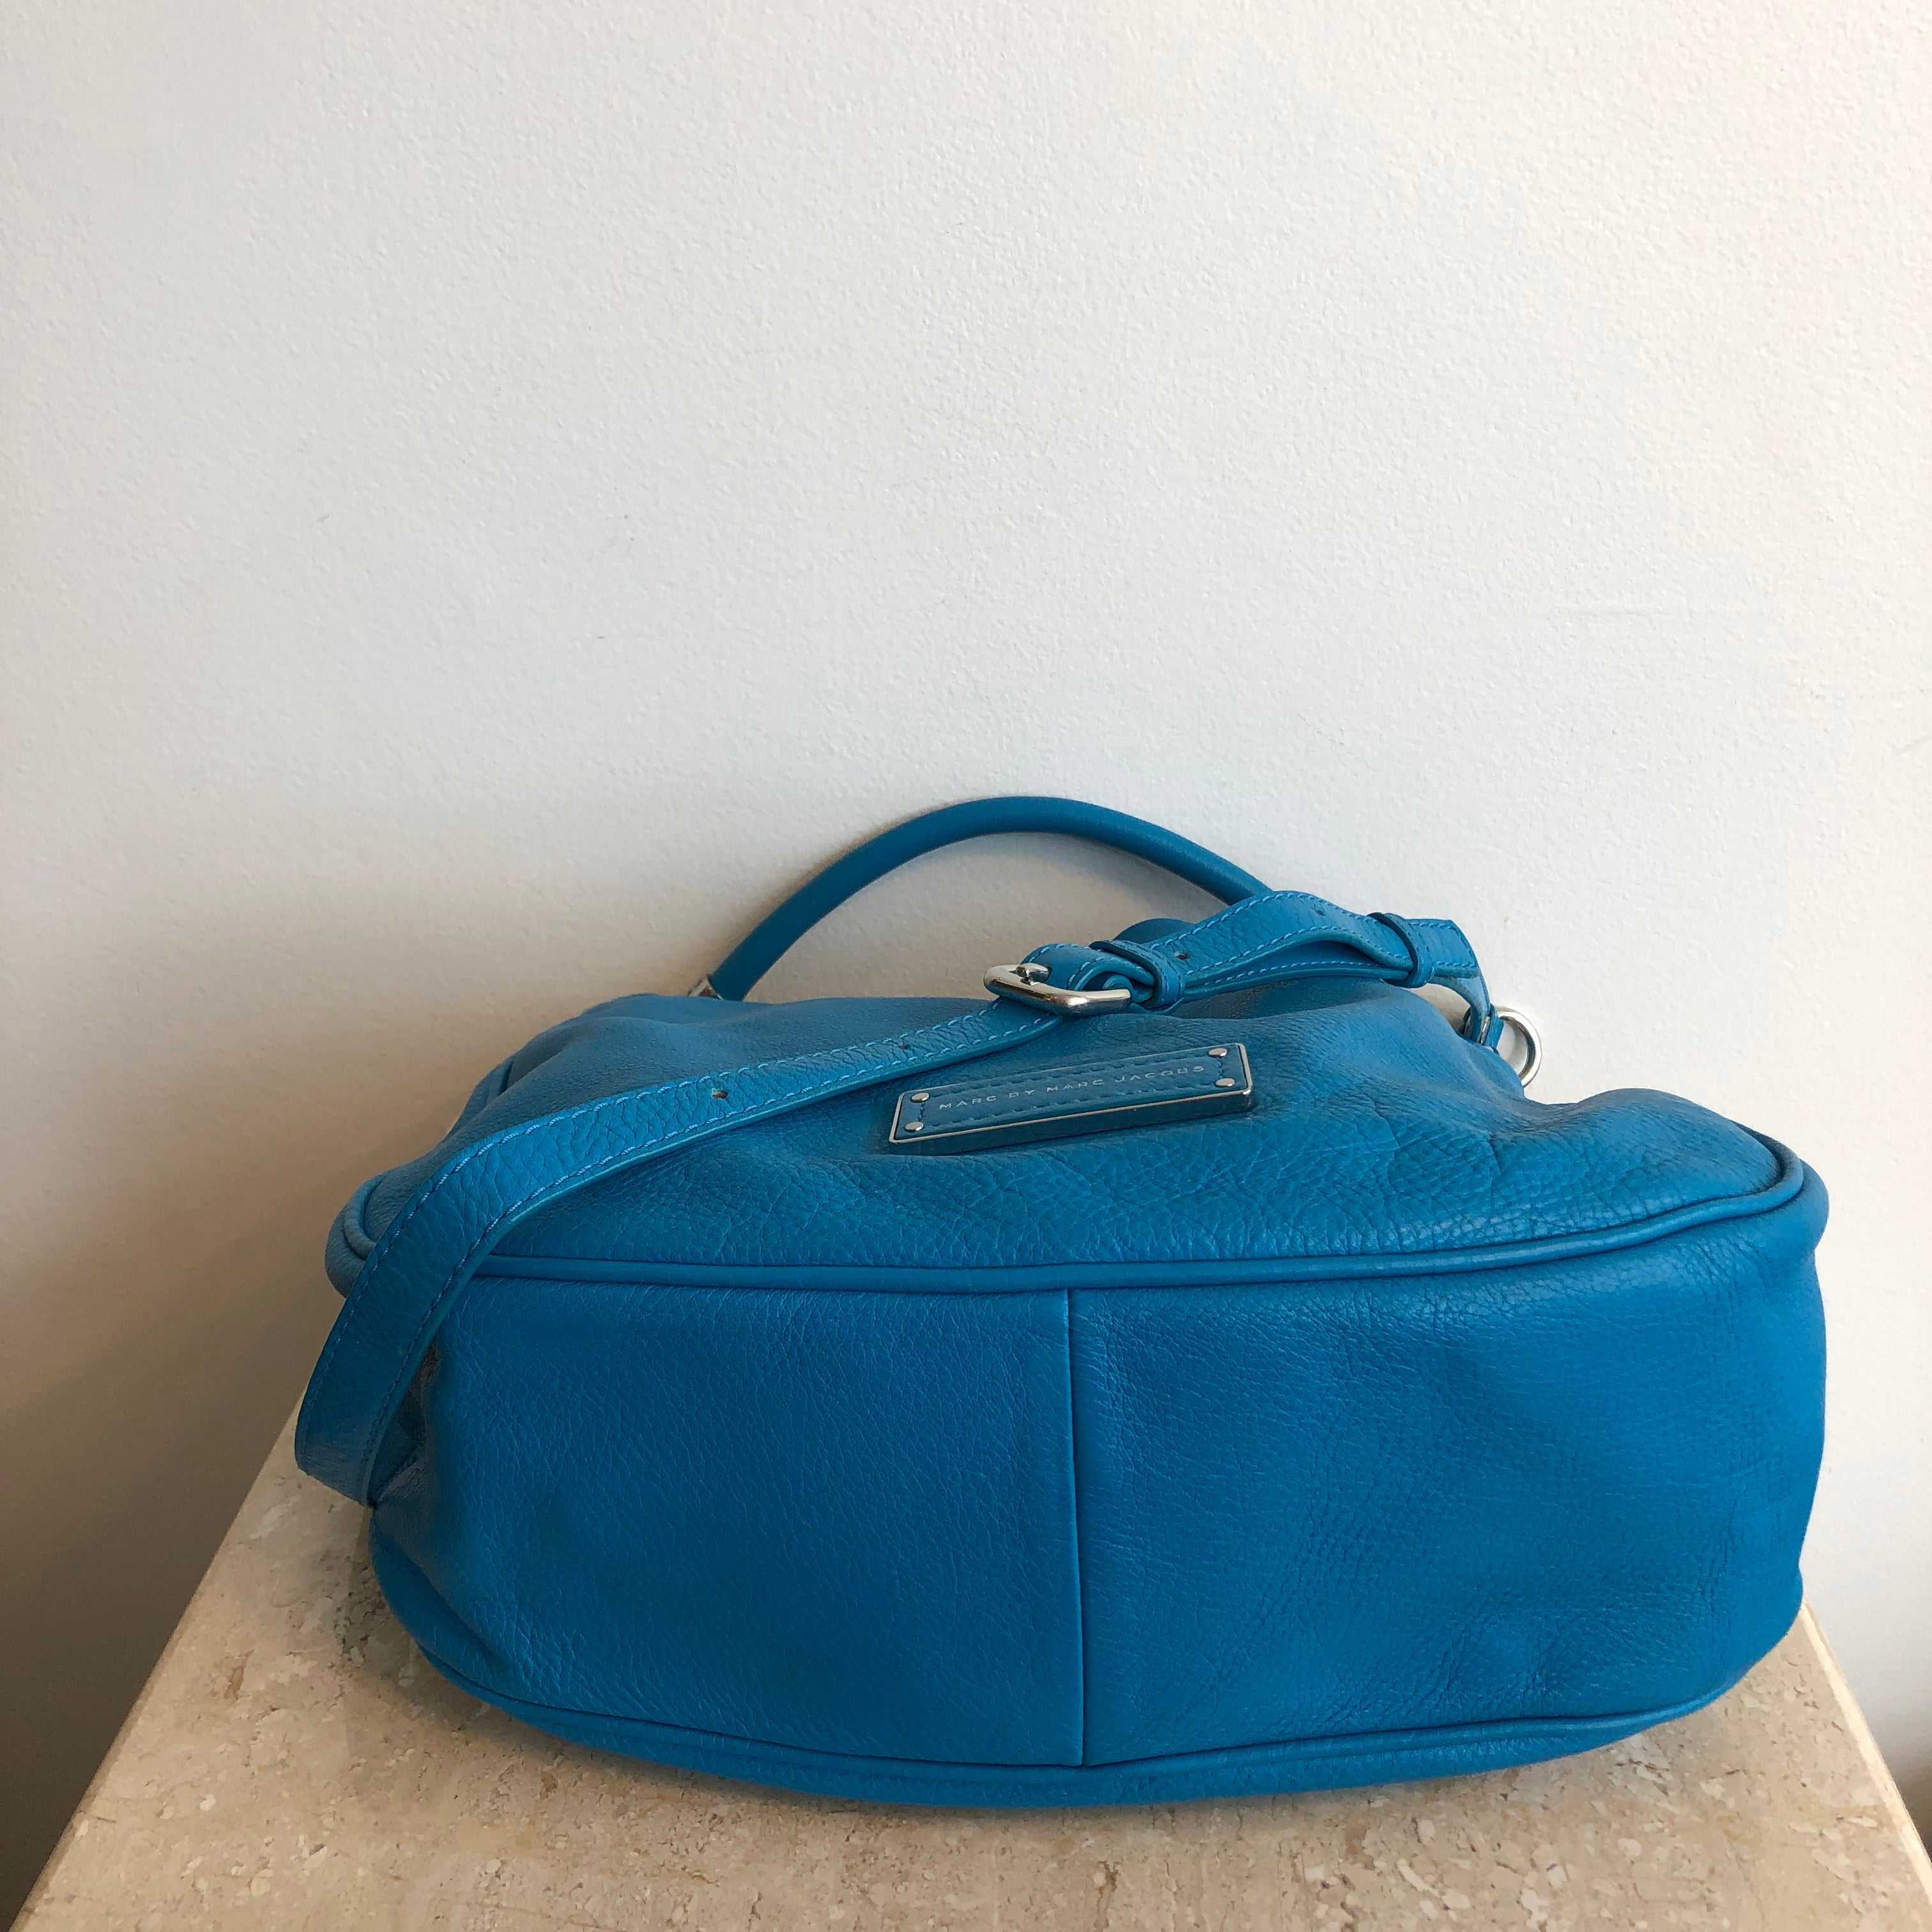 Authentic MARC BY MARC JACOBS Turquoise Leather Crossbody